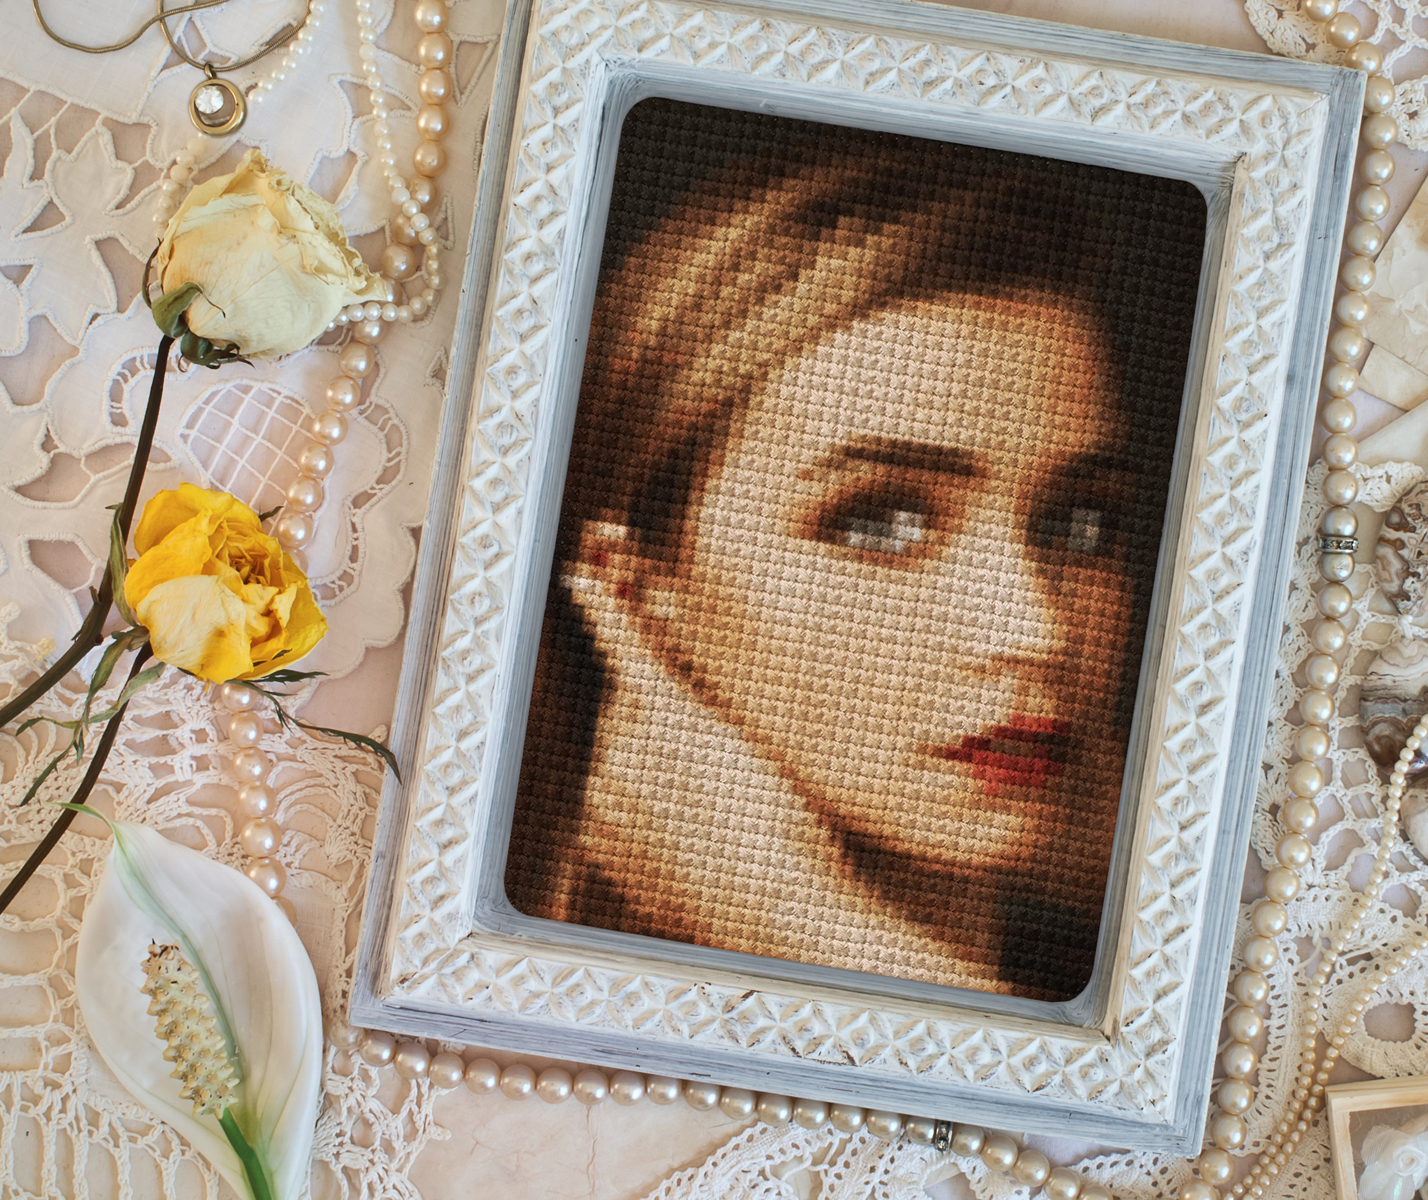 A portrait of a woman was cross stitched online